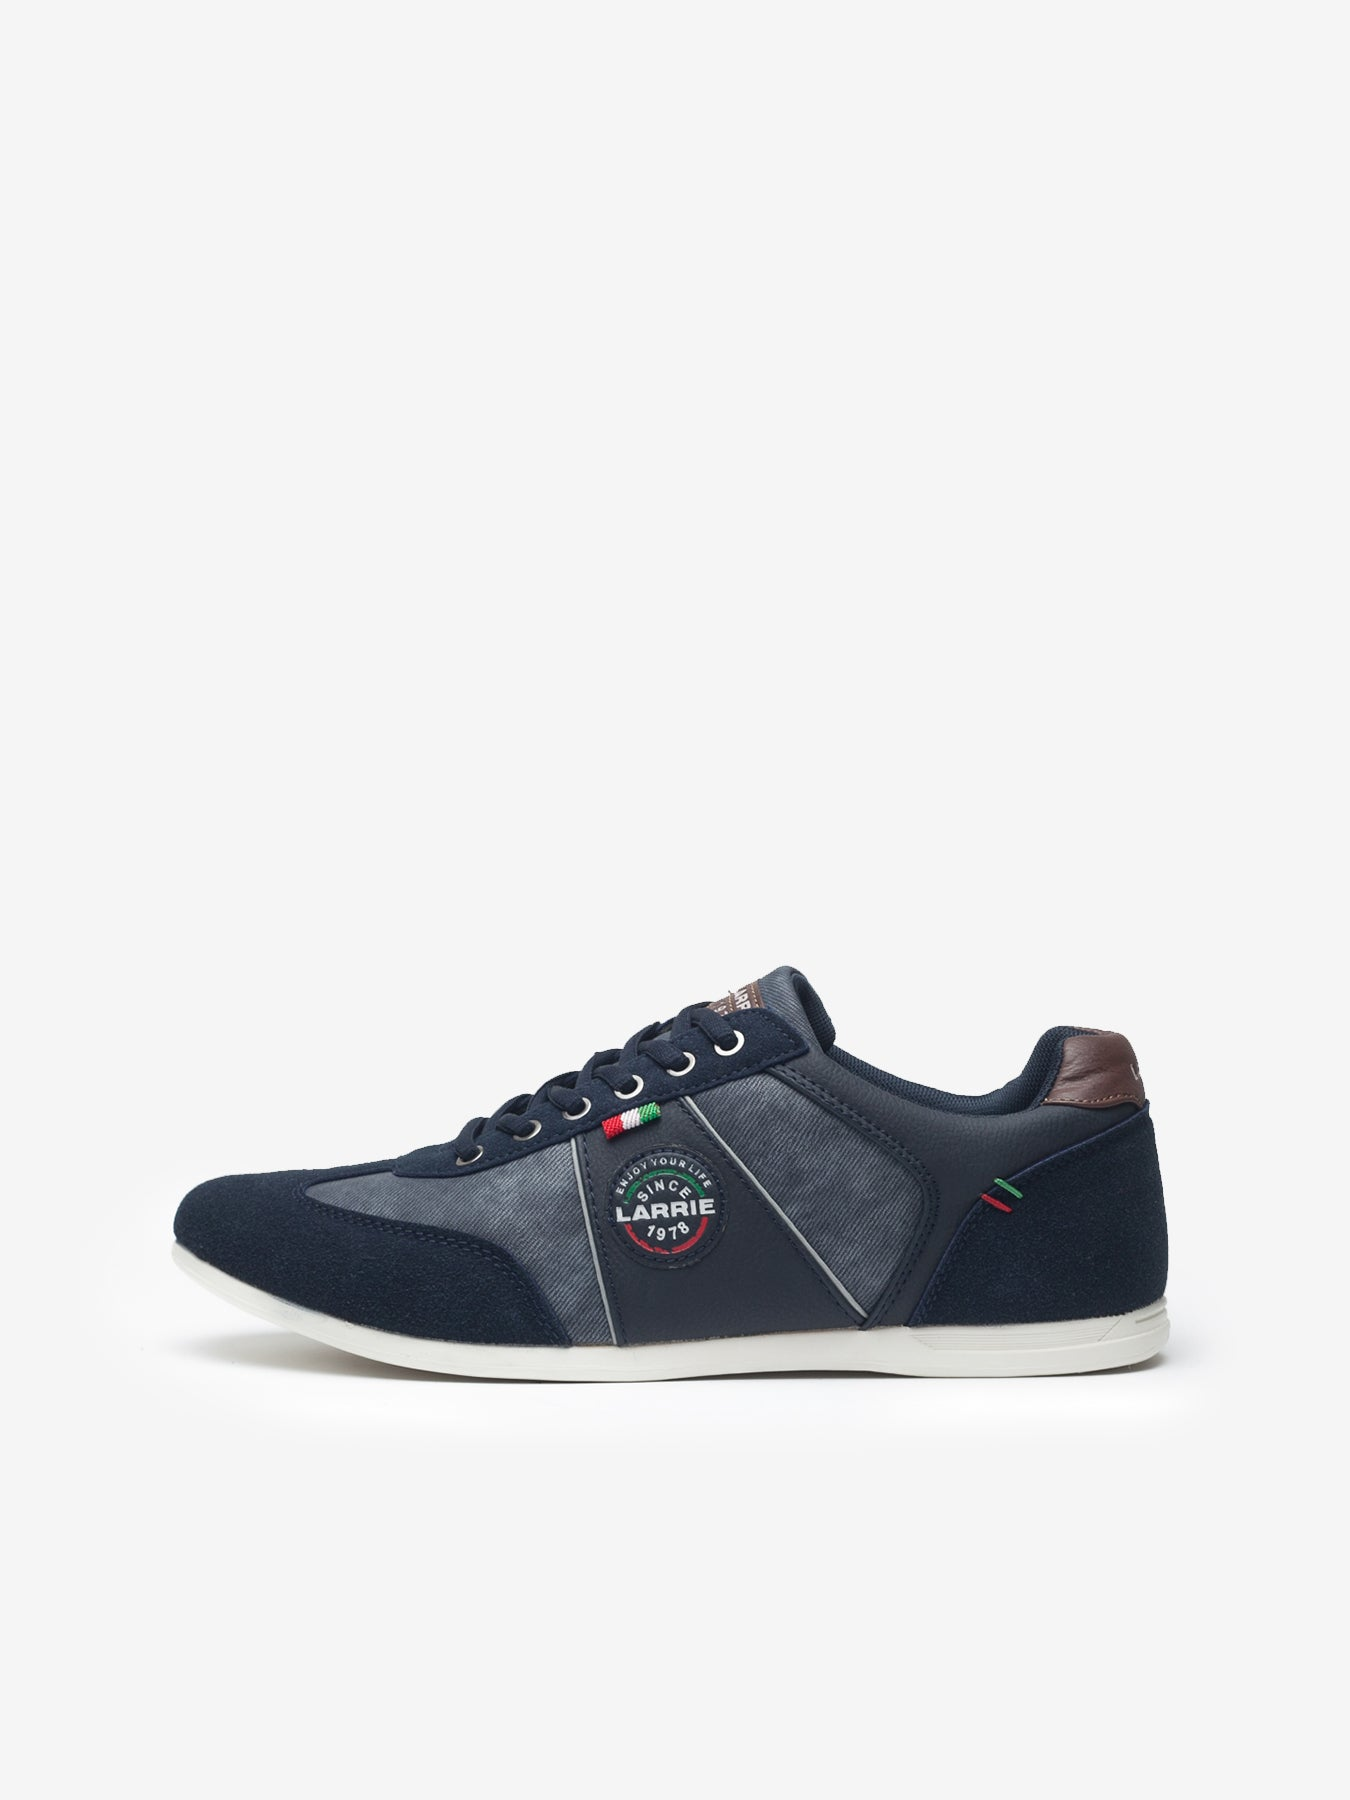 acbb1f6cfe6d Larrie Navy Casual Sneakers - Navy – Luggagehouse2u